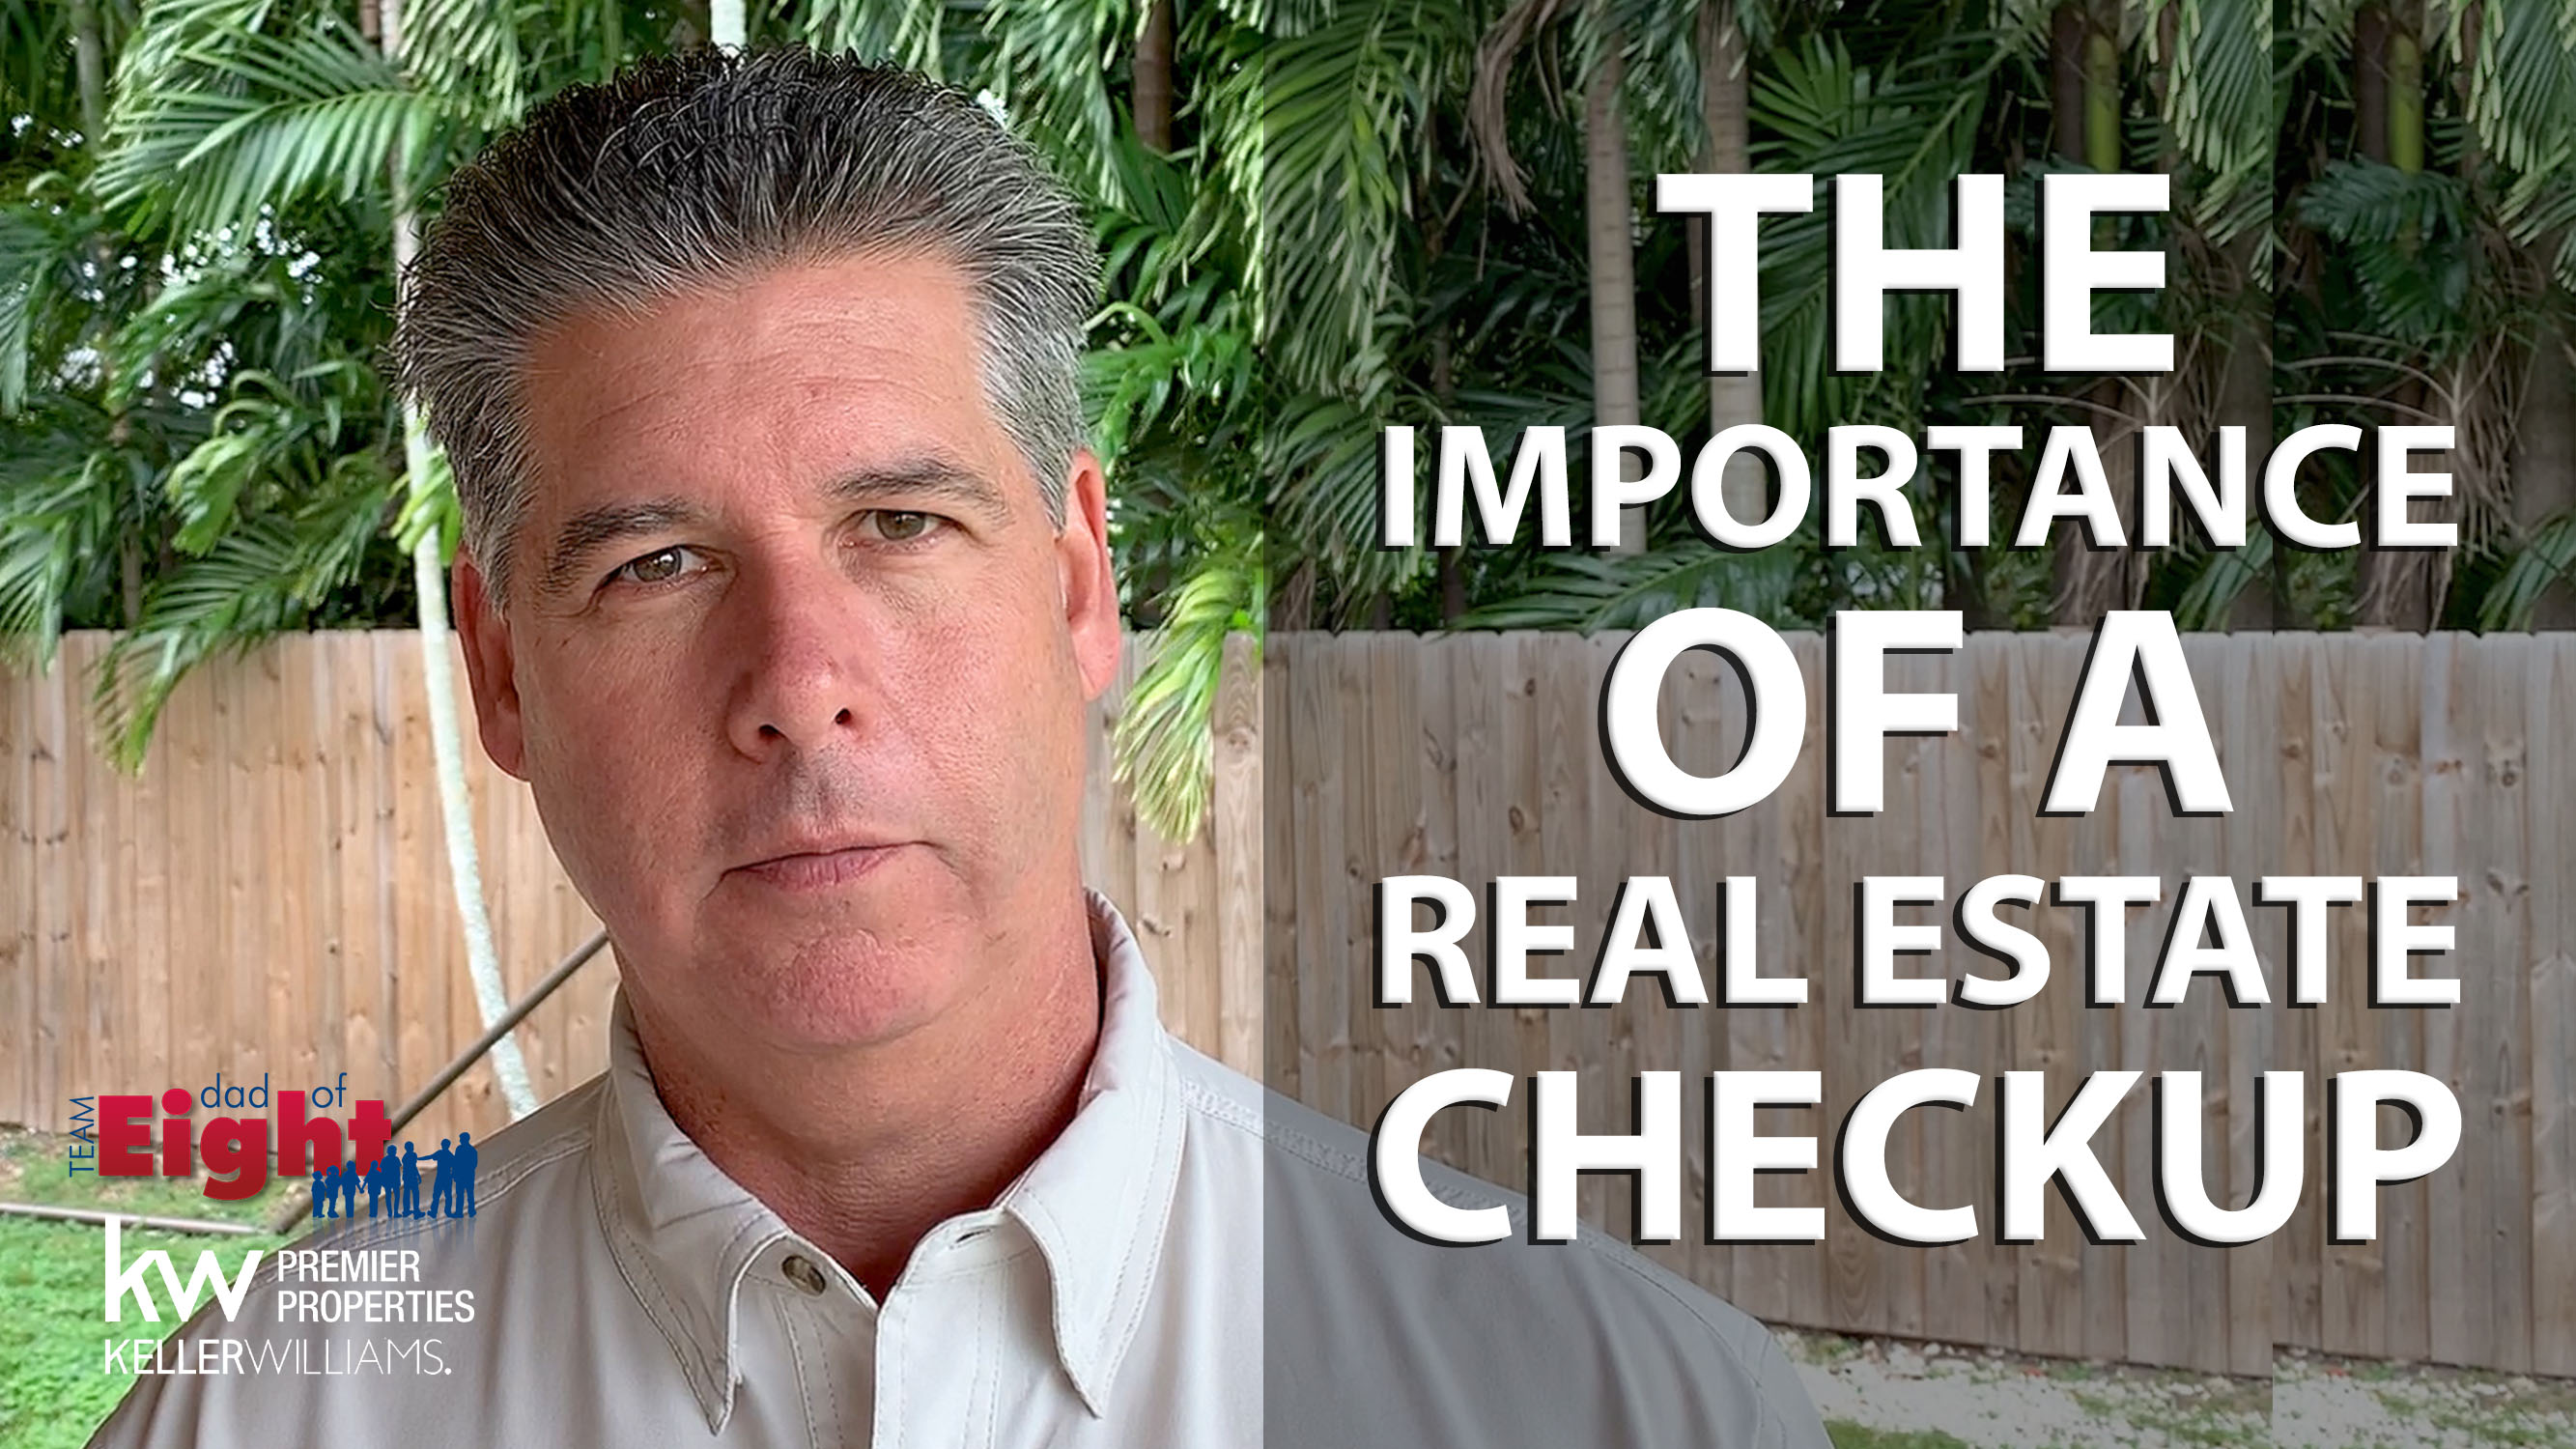 Q: Have You Had Your Real Estate Checkup Yet?